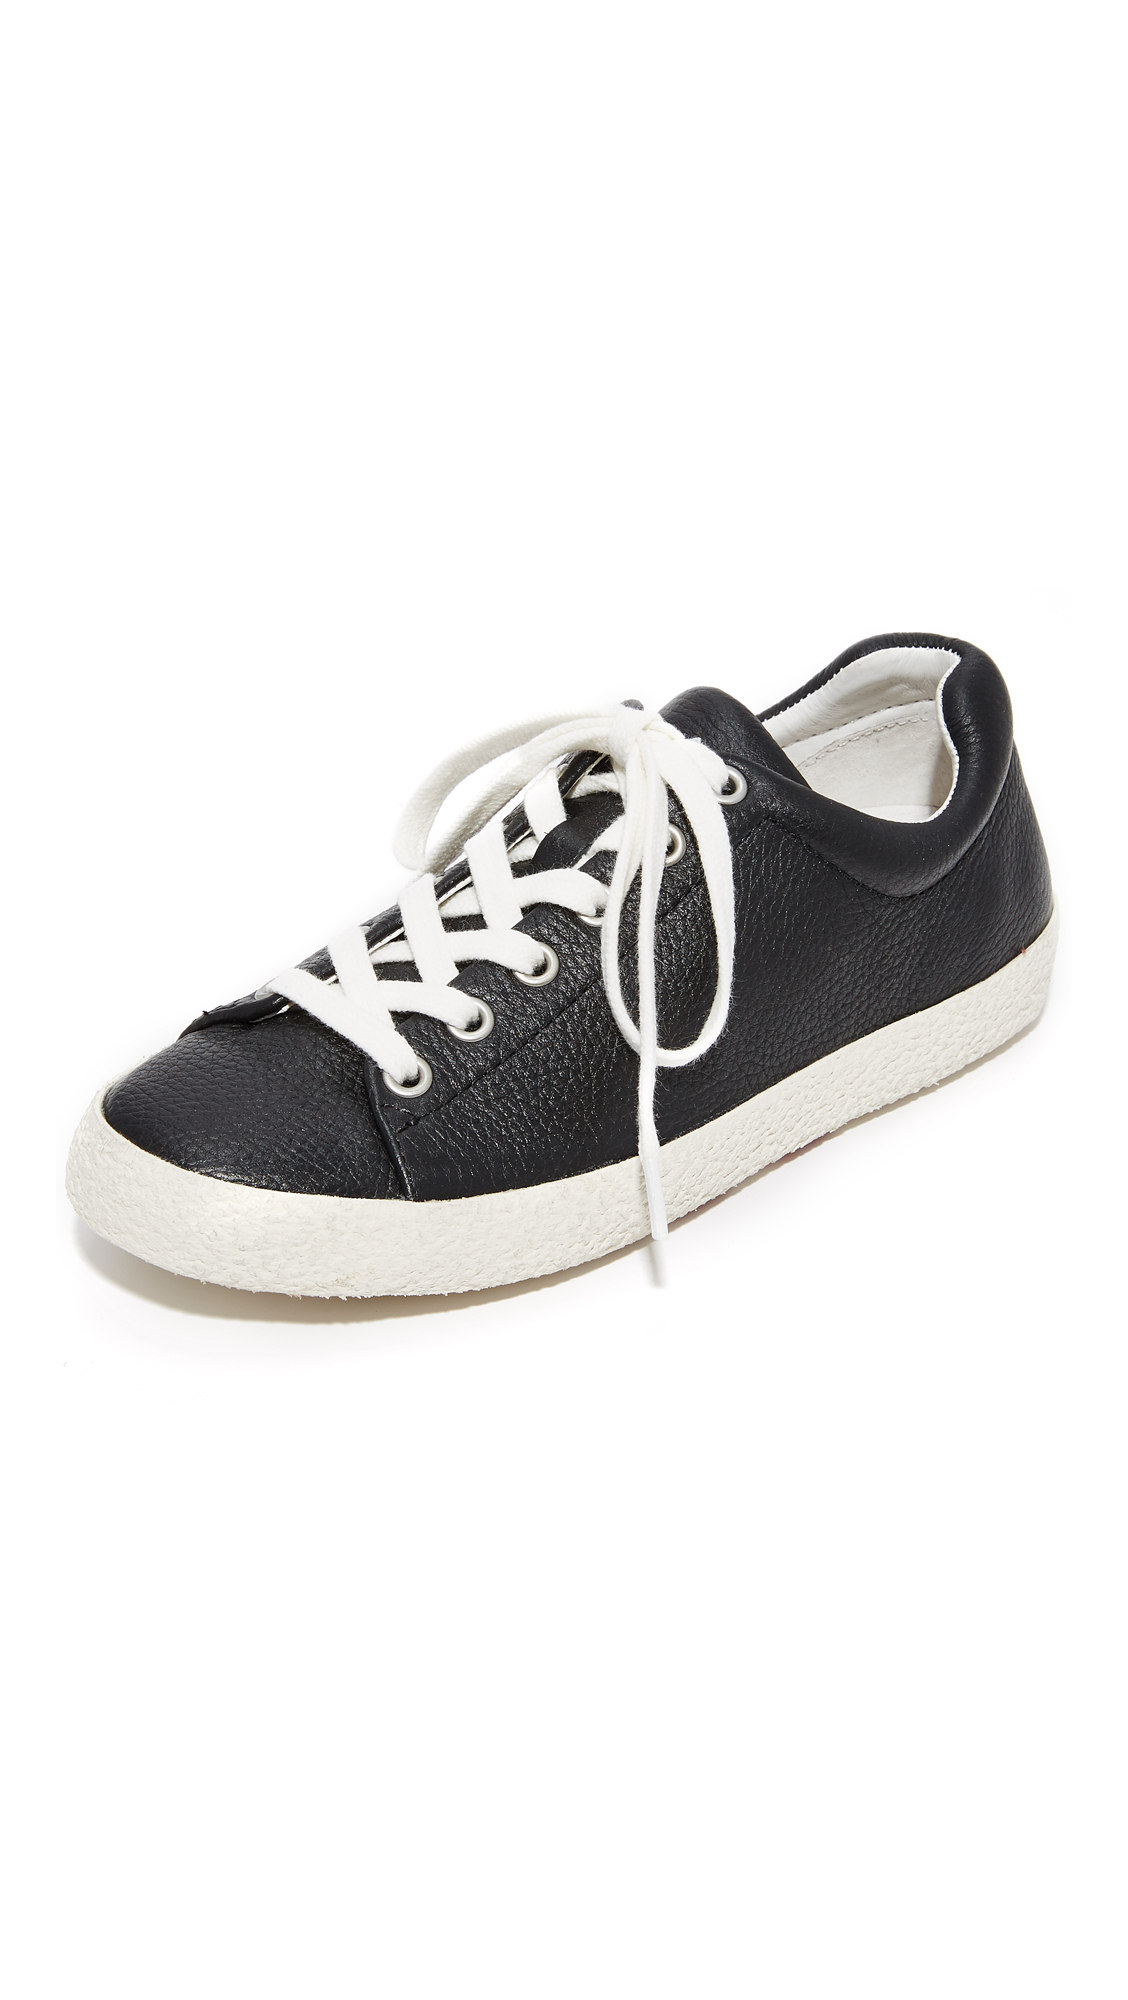 Ash Nicky Bis Sneakers - Black/Red at Shopbop